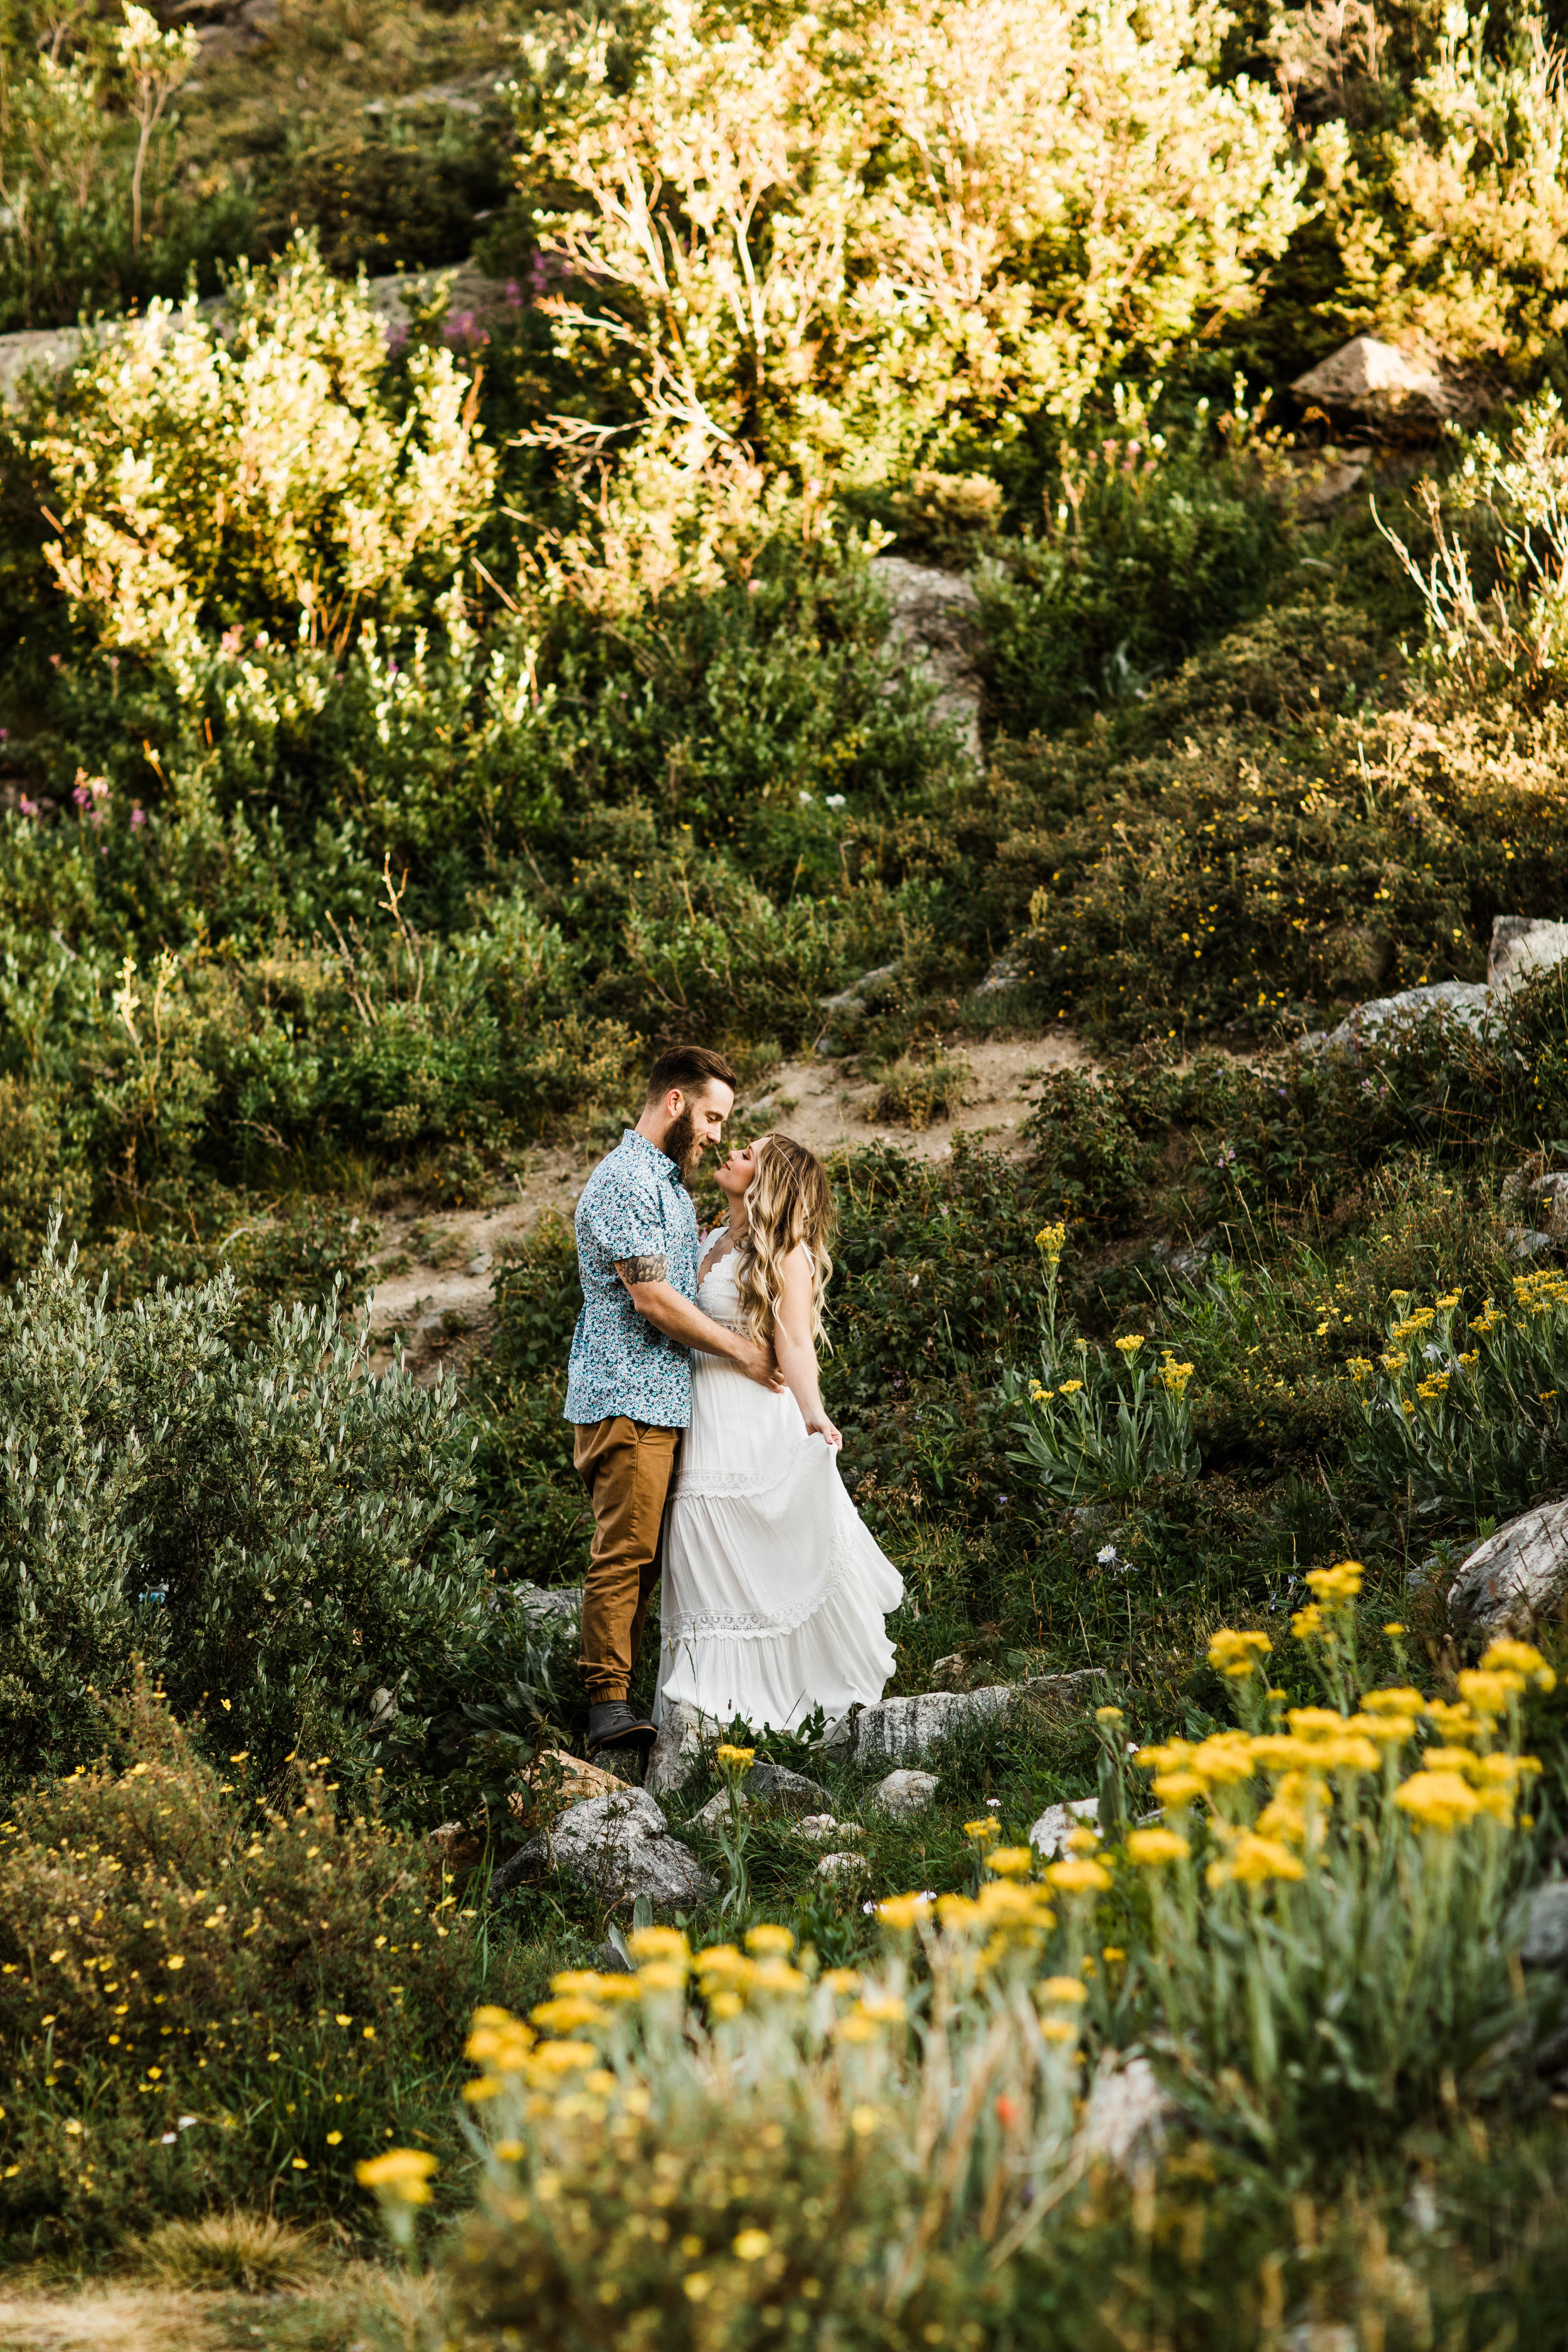 eloping couple kissing in an alpine wildflower field | Breckenridge elopement and mountain wedding photographers